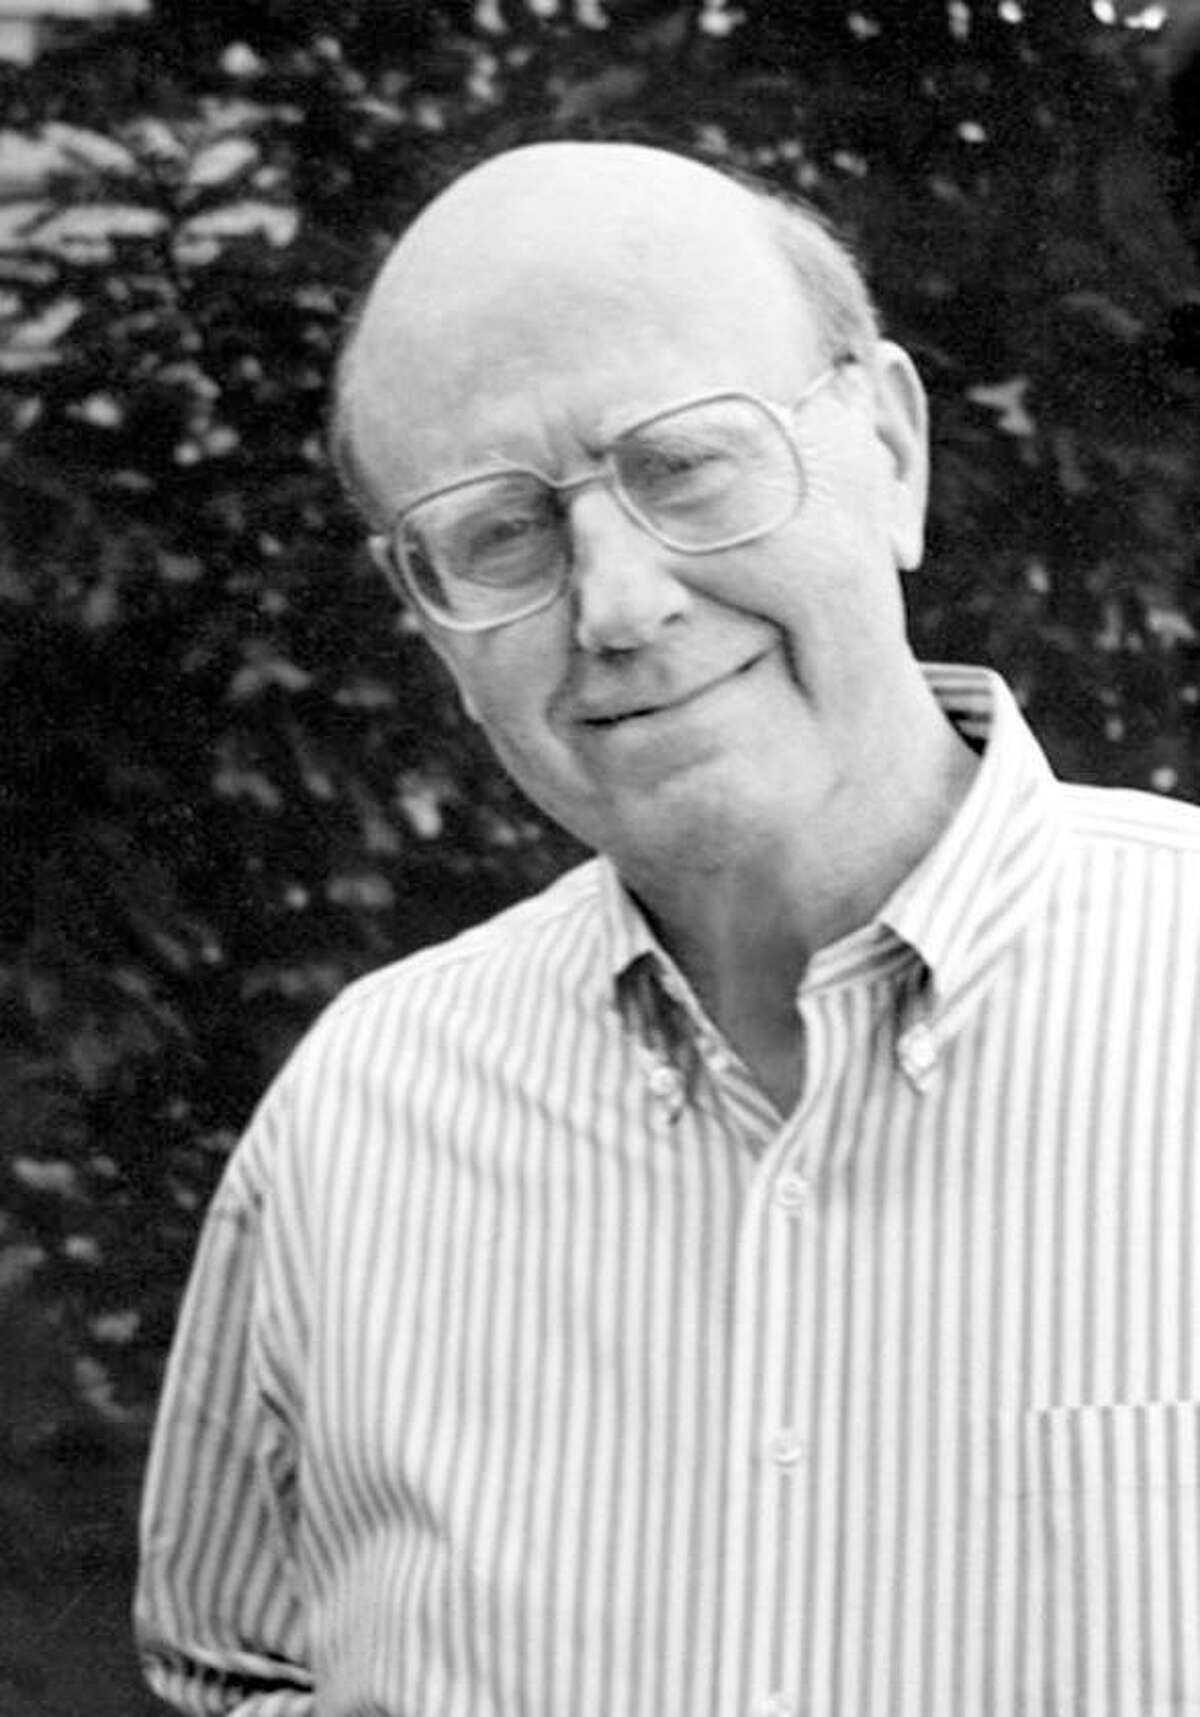 Longtime Hearst executive Benson M. Srere of Greenwich died at the age of 89.